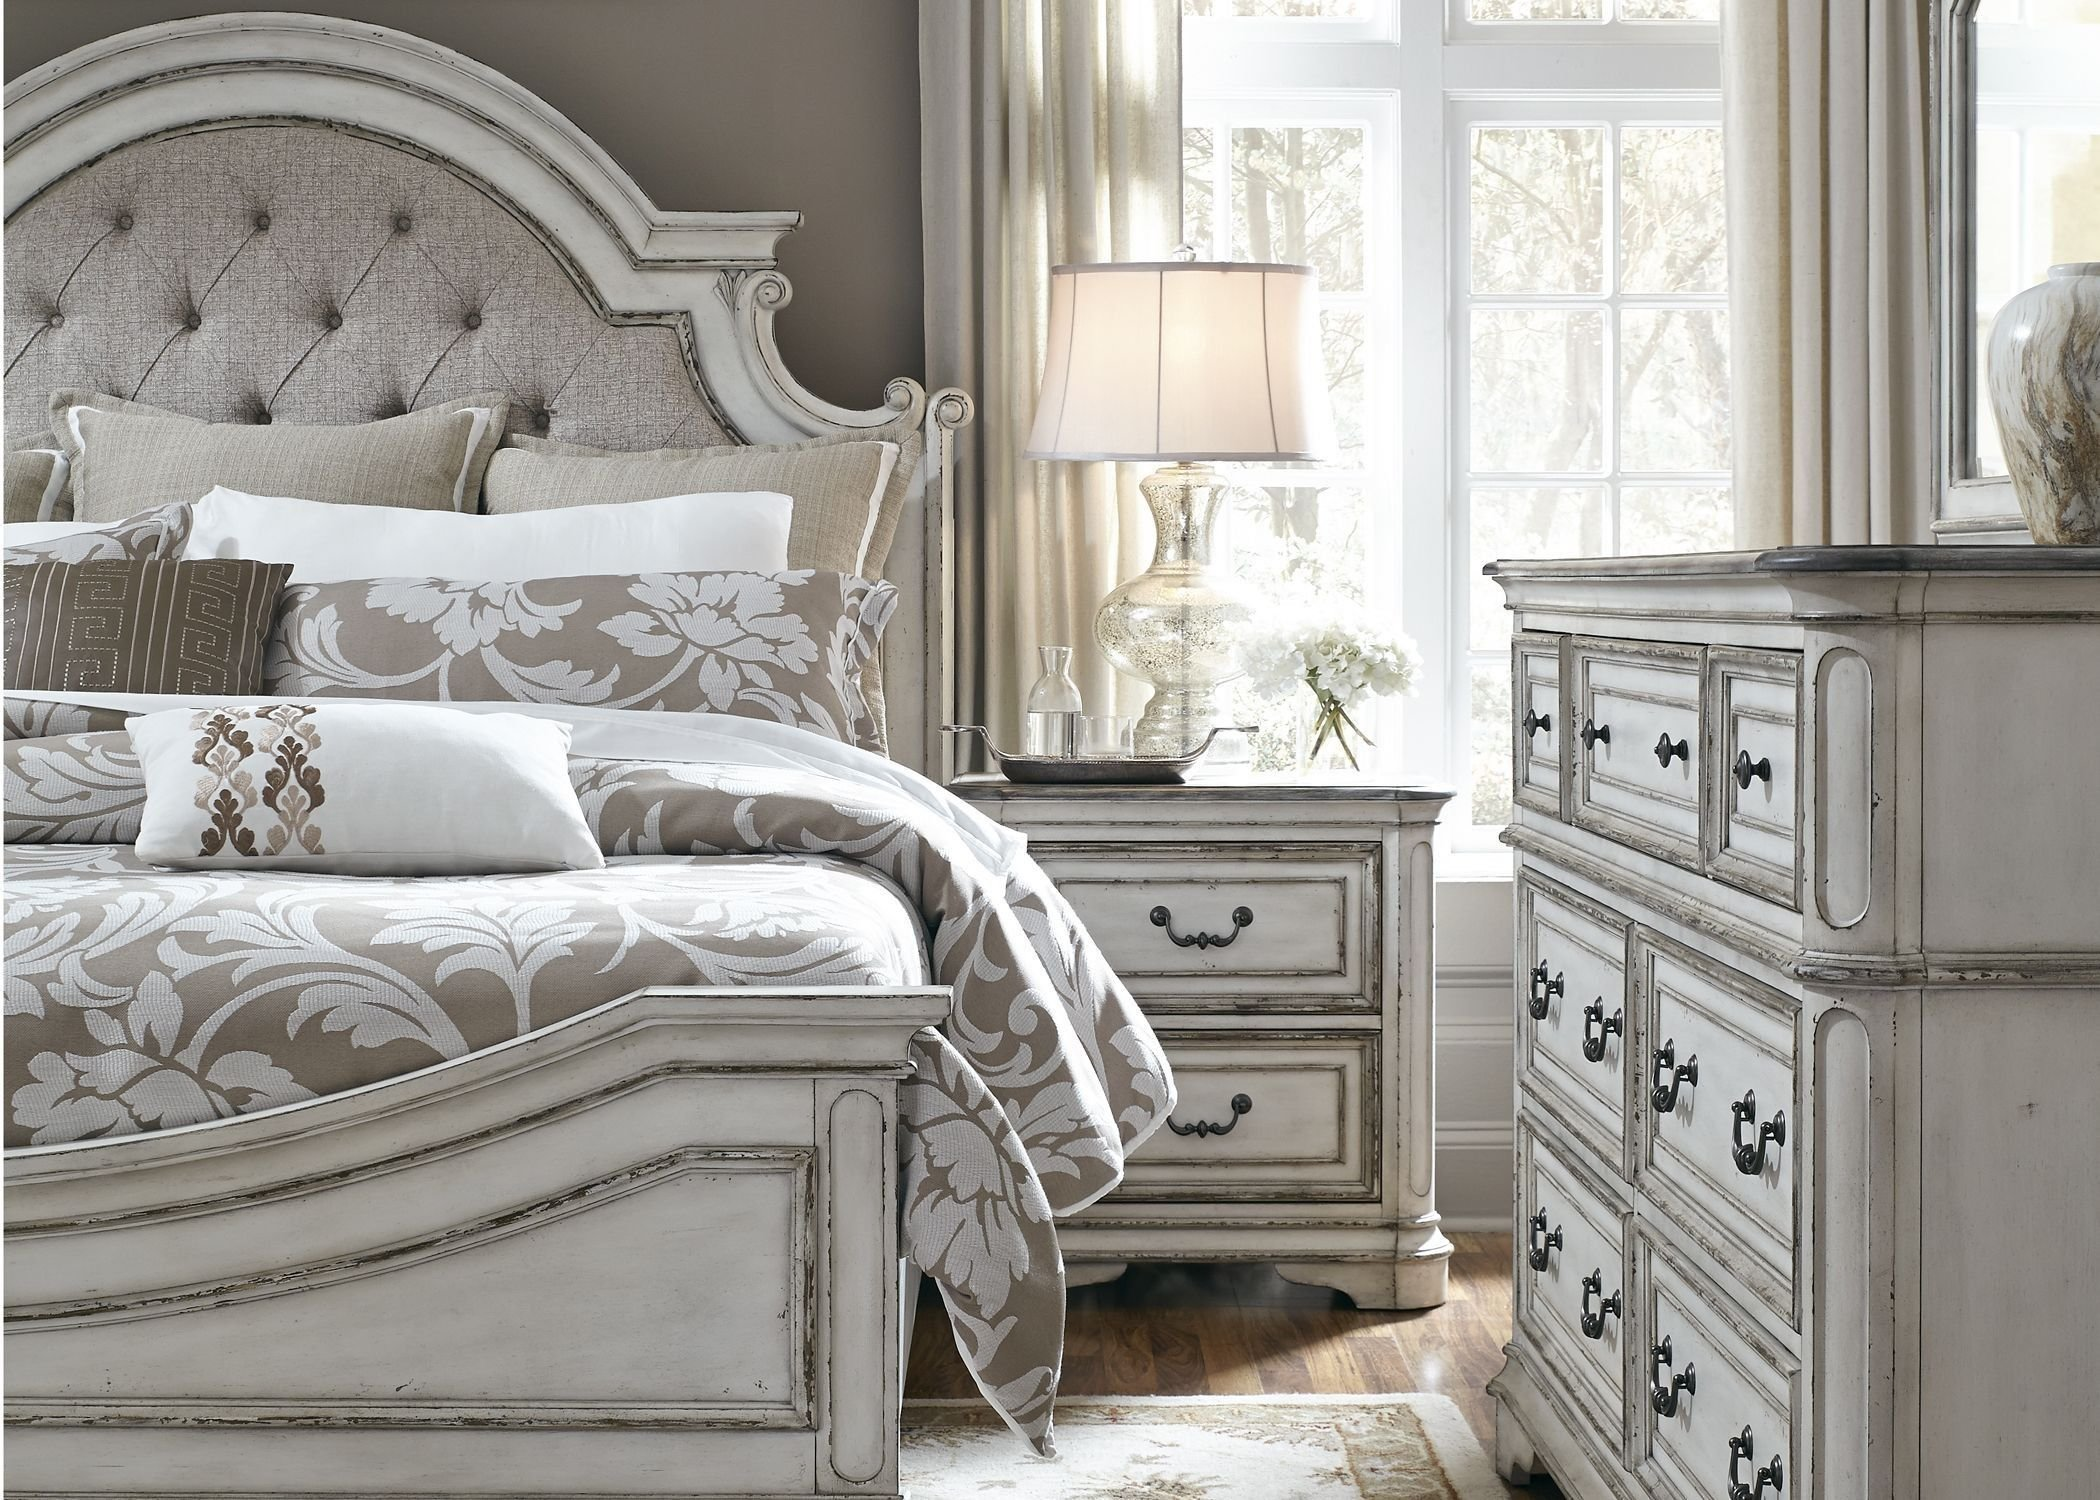 Best Magnolia Manor Antique White Upholstered Panel Bedroom Set 244 Br Qub Liberty New Home Ideas With Pictures